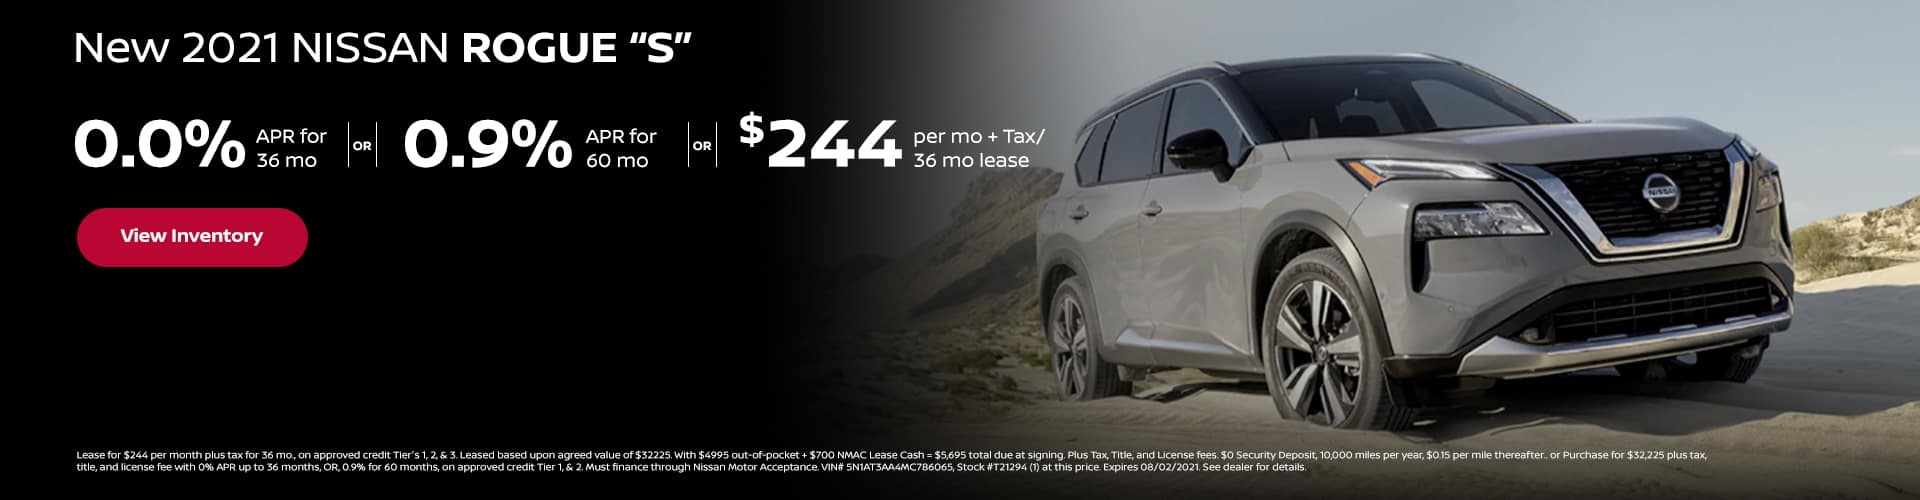 """0.0% APR x 36 mo. or 0.9% APR x 60 mo New 2021 Nissan Rogue """"S"""" (1) AVAILABLE $244 per mo. + Tax / 36 mo lease"""